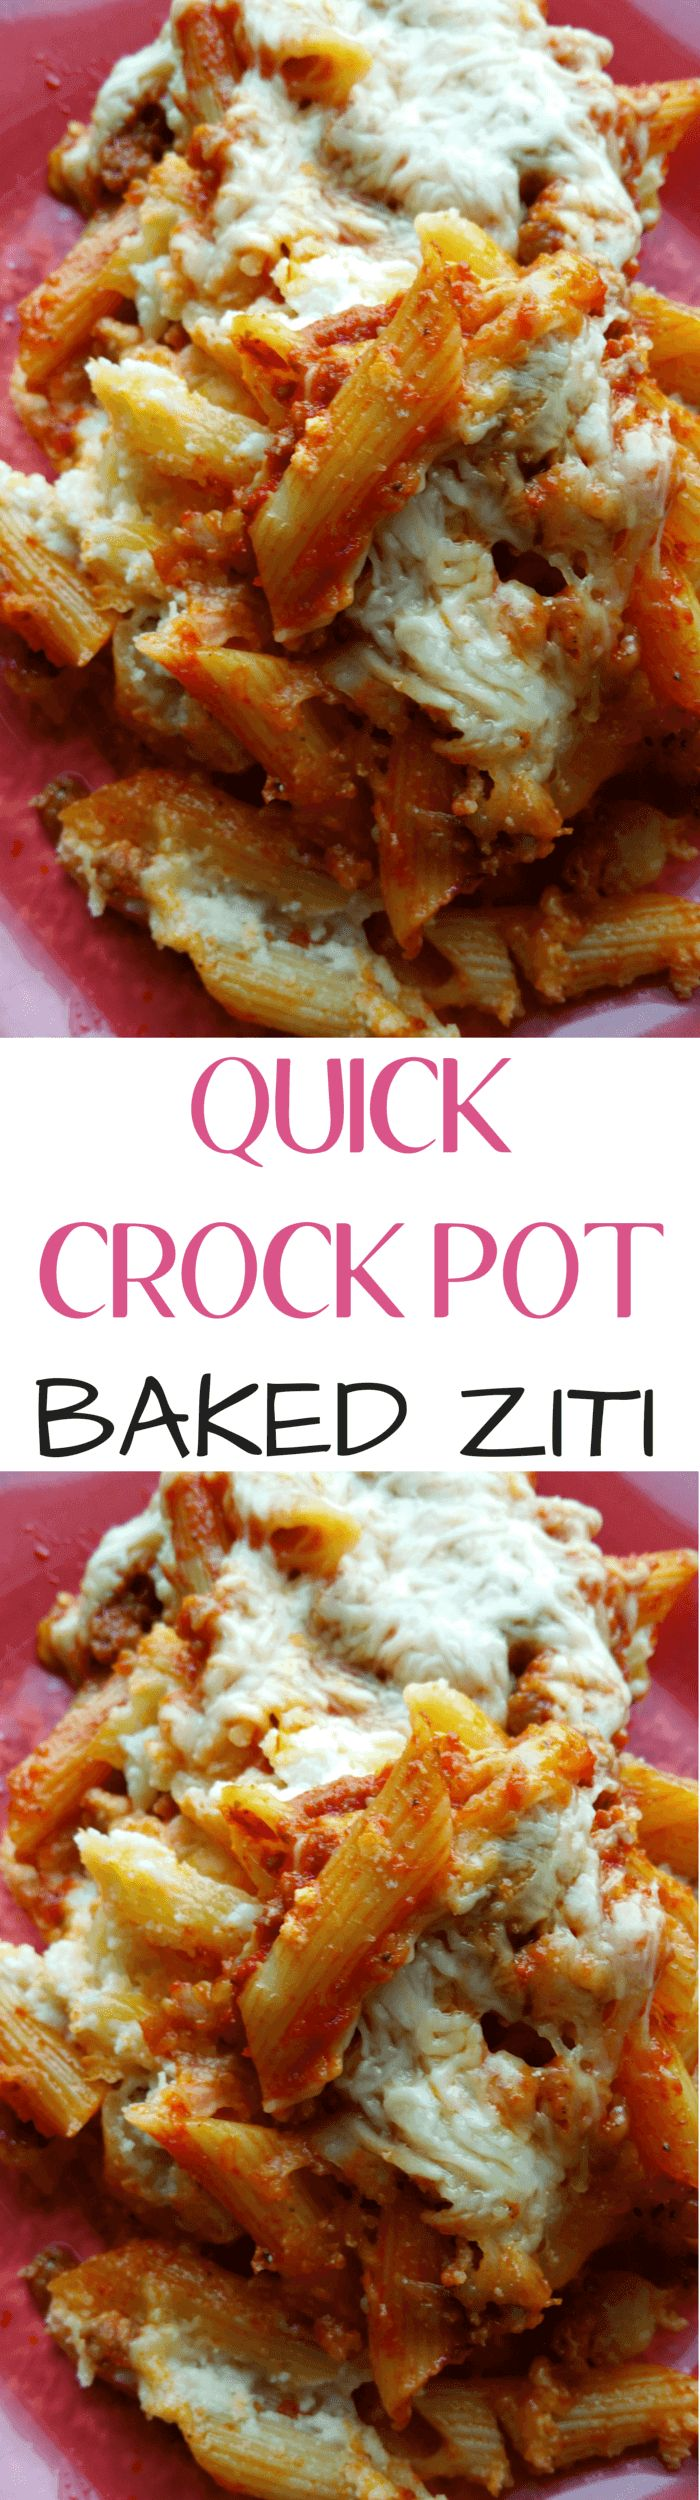 Quick 30 Minute Meals: Crock Pot Baked Ziti | Easy crock pot baked ziti is an al…